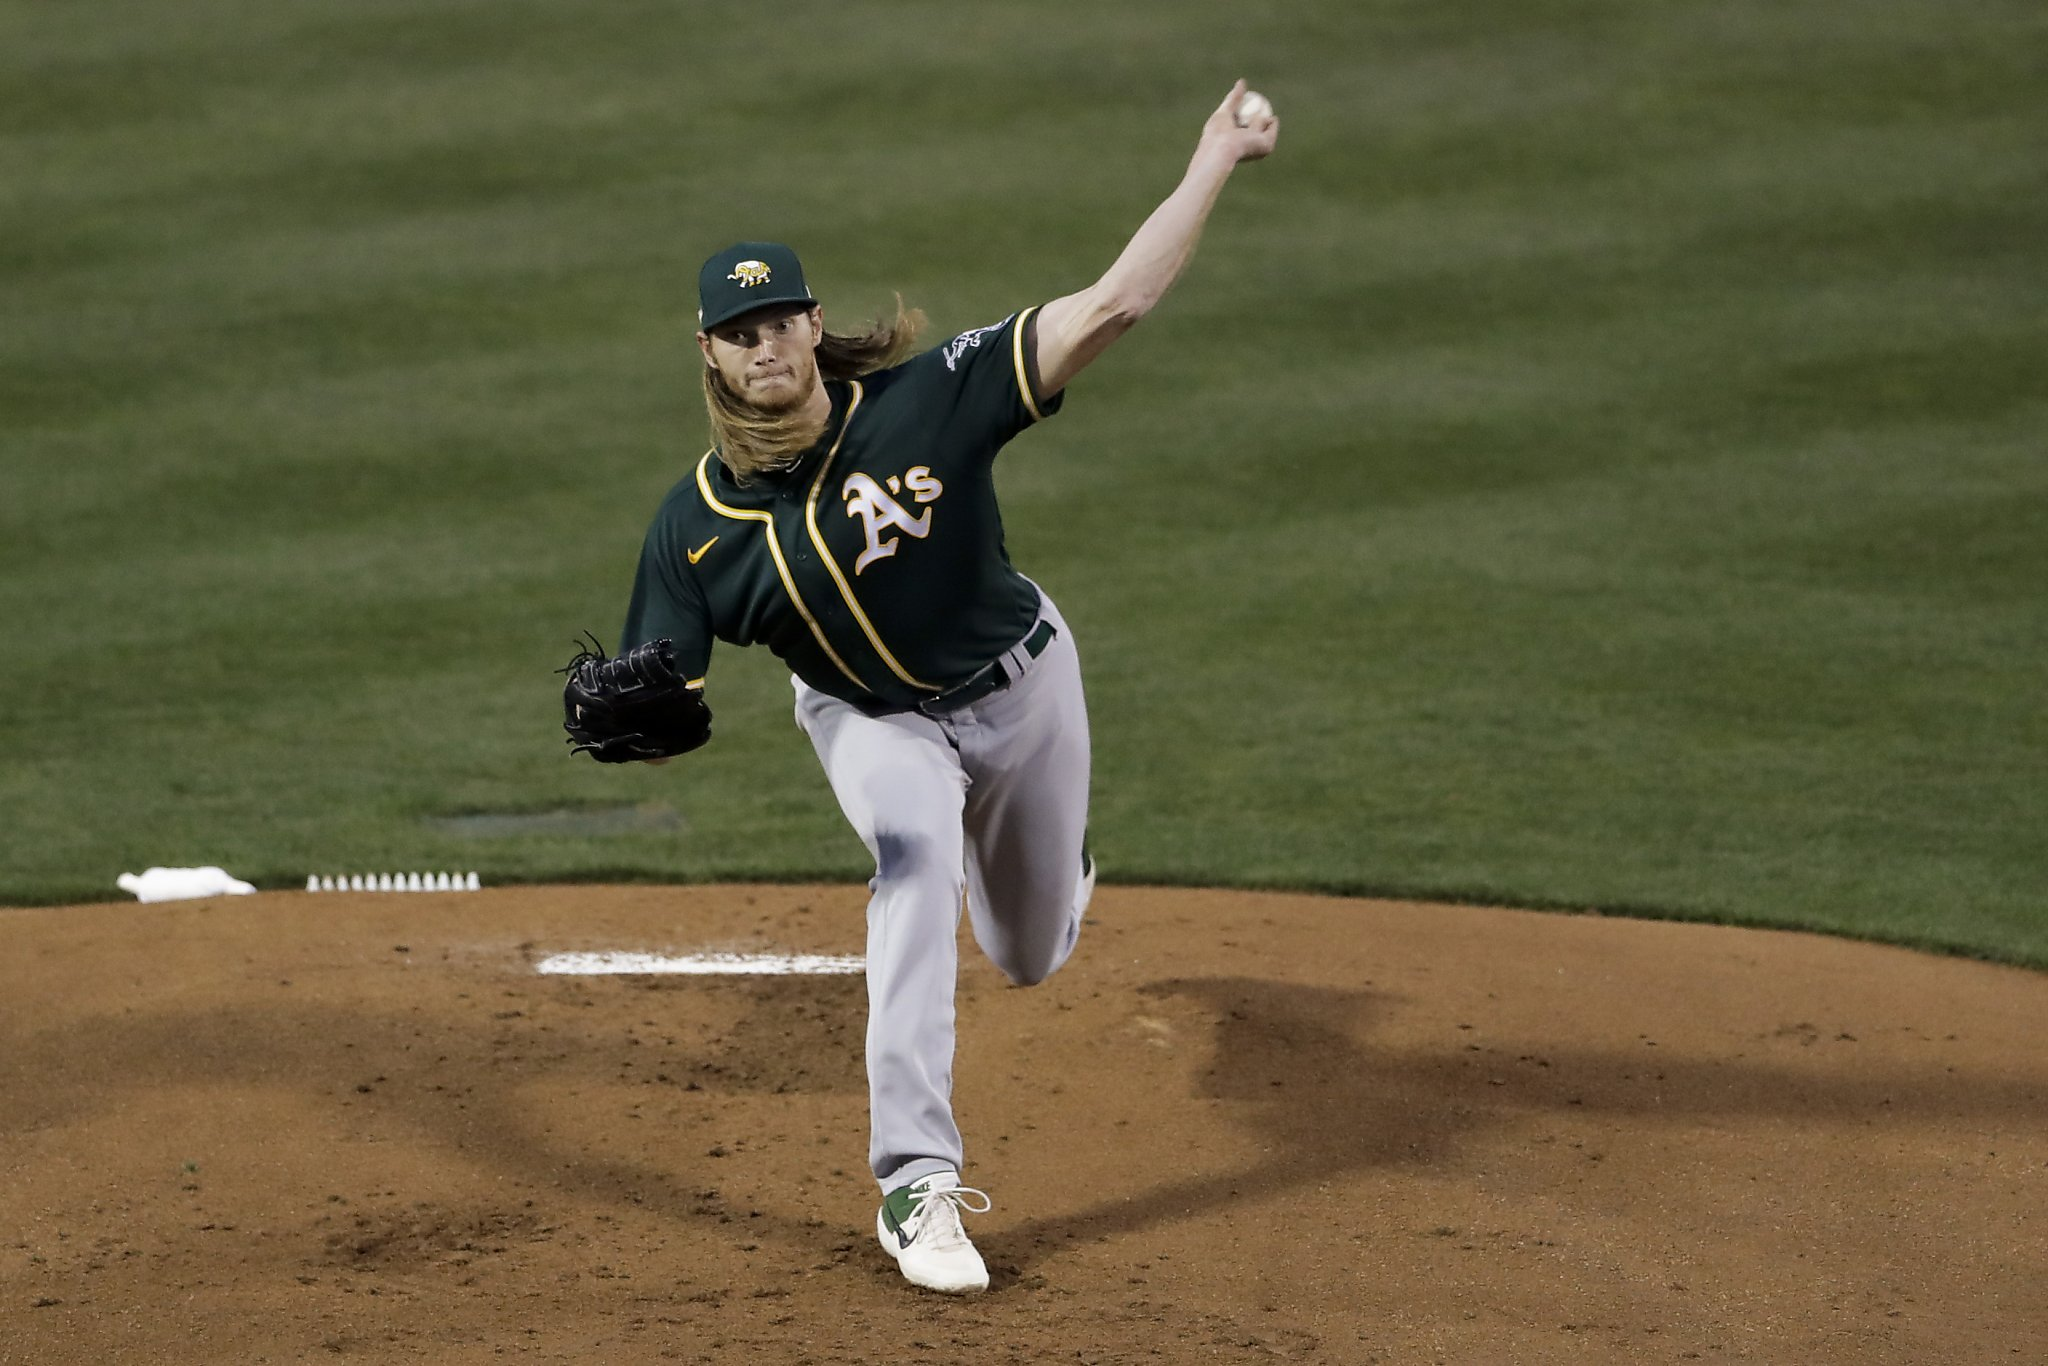 A's rookie A.J. Puk impresses again, this time against tough Rockies lineup